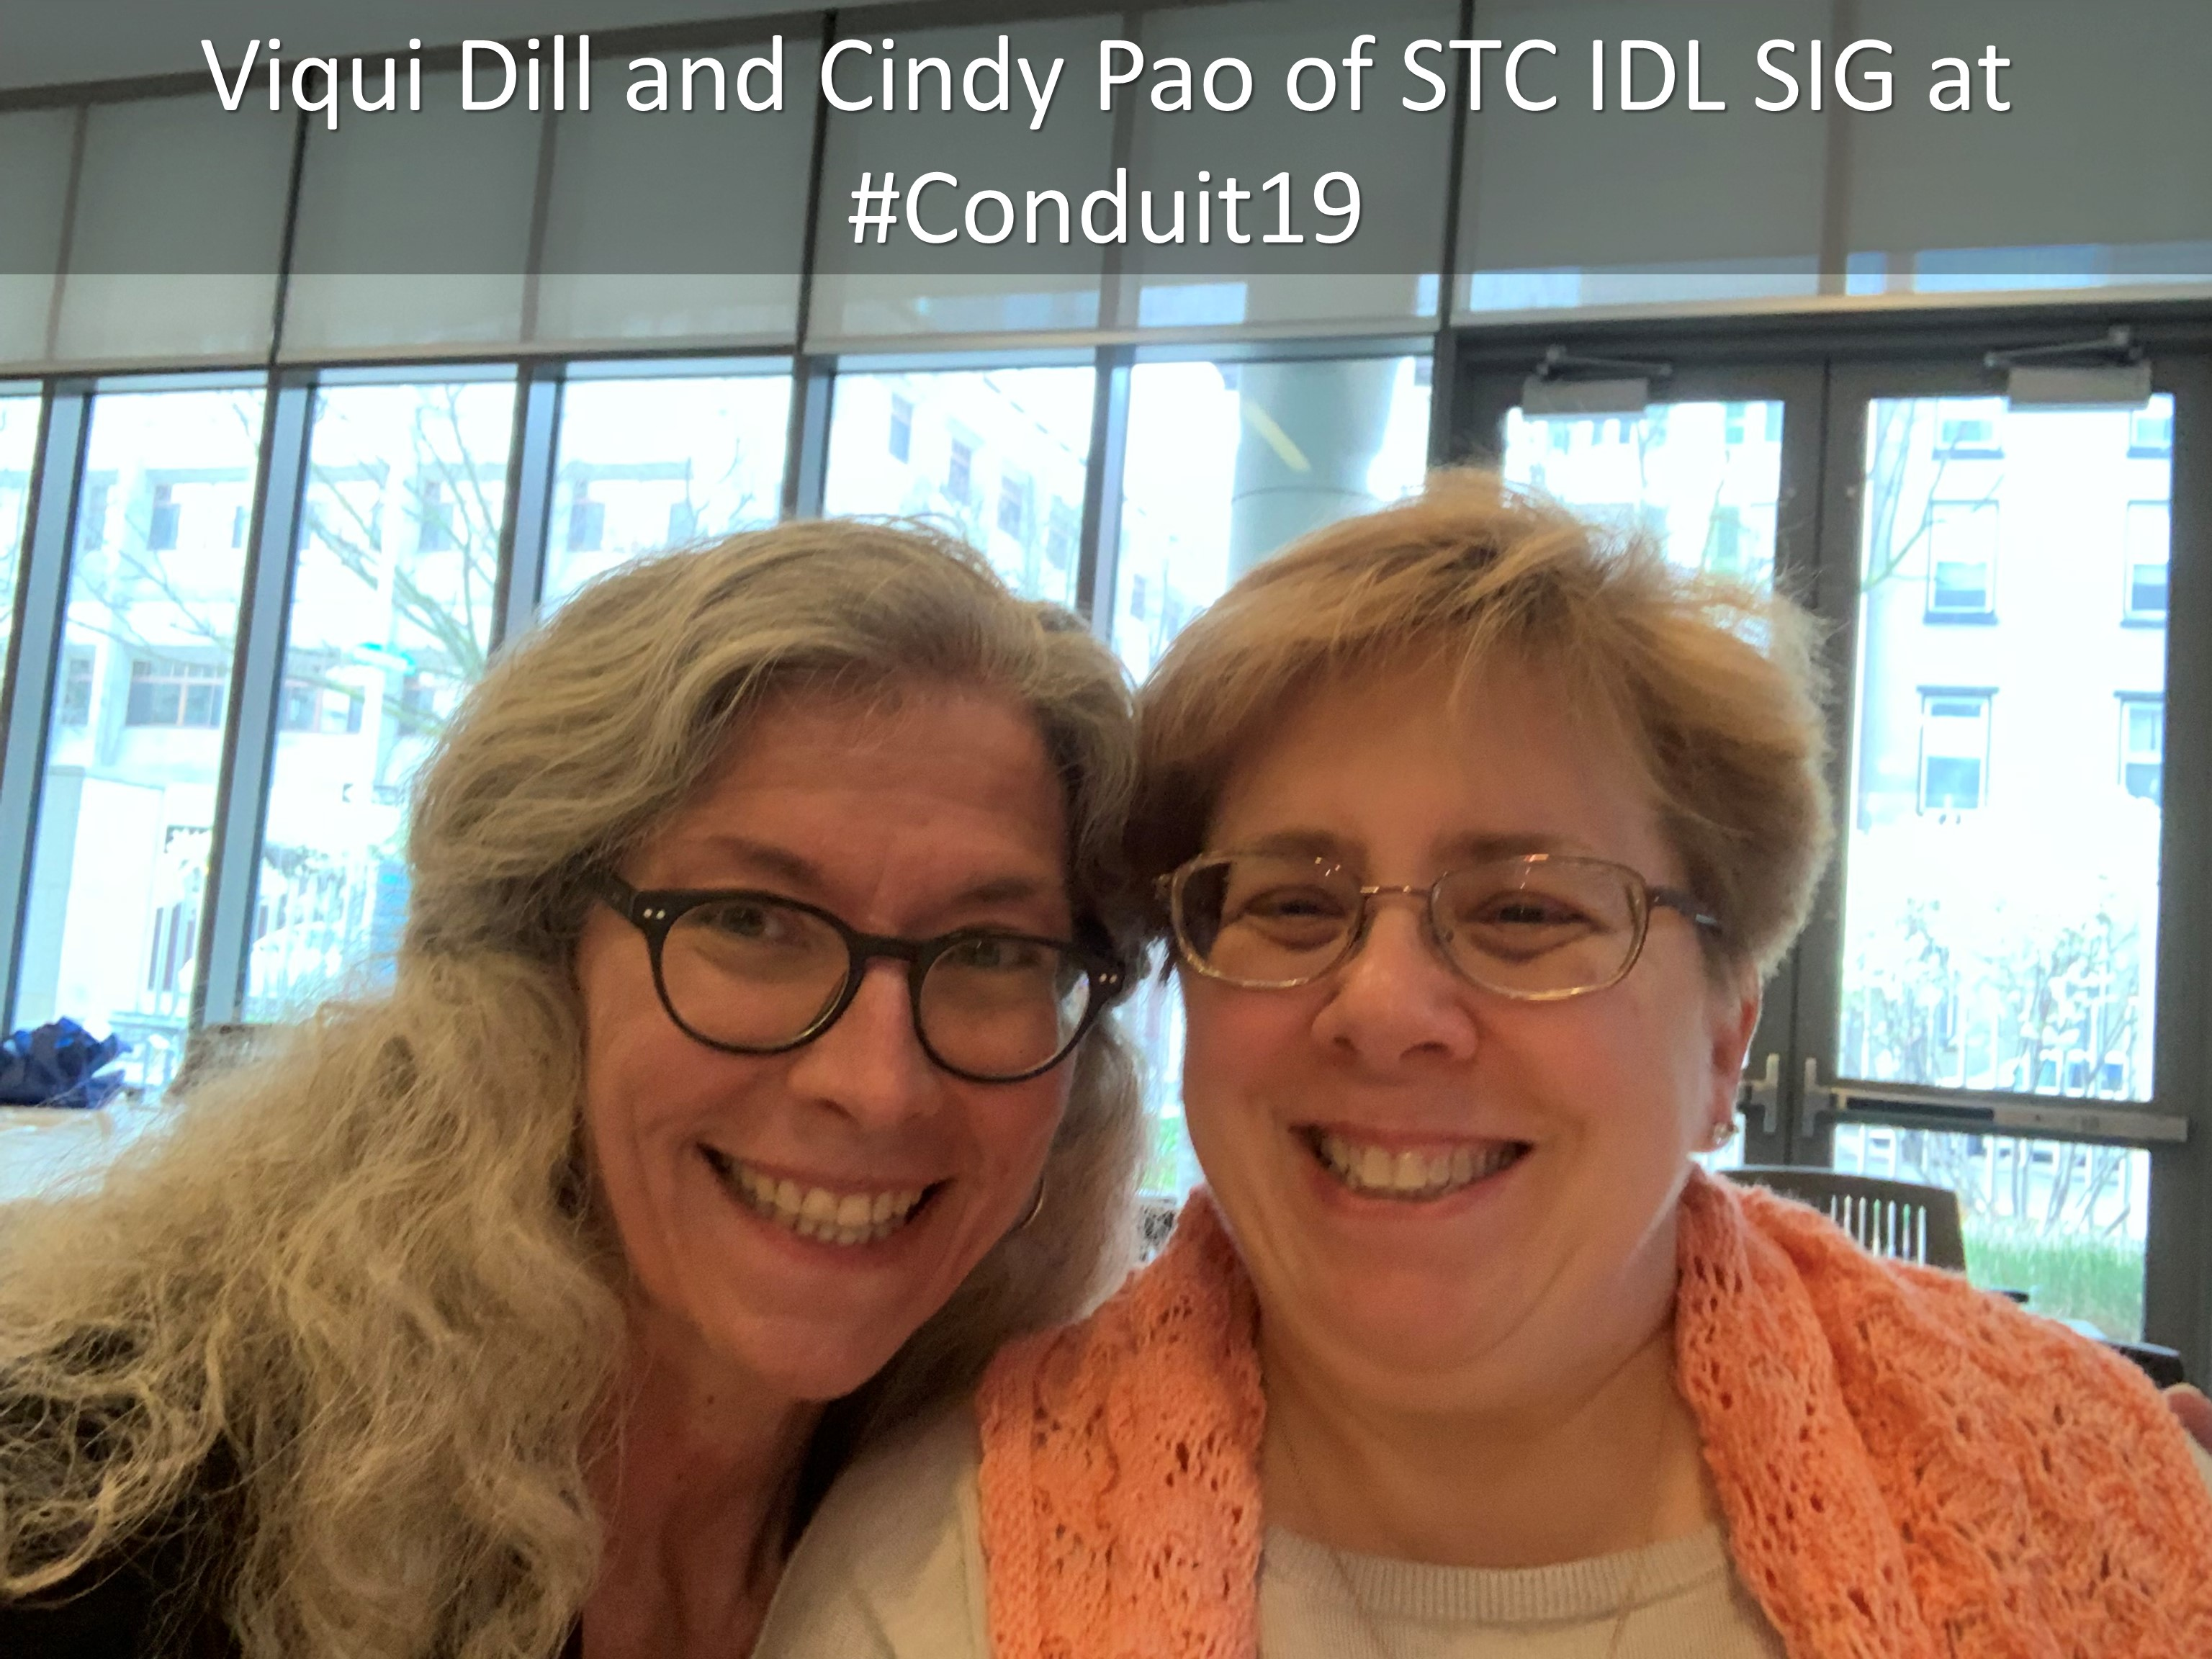 19 Viqui Dill and Cindy Pao of STC IDL SIG at Conduit19